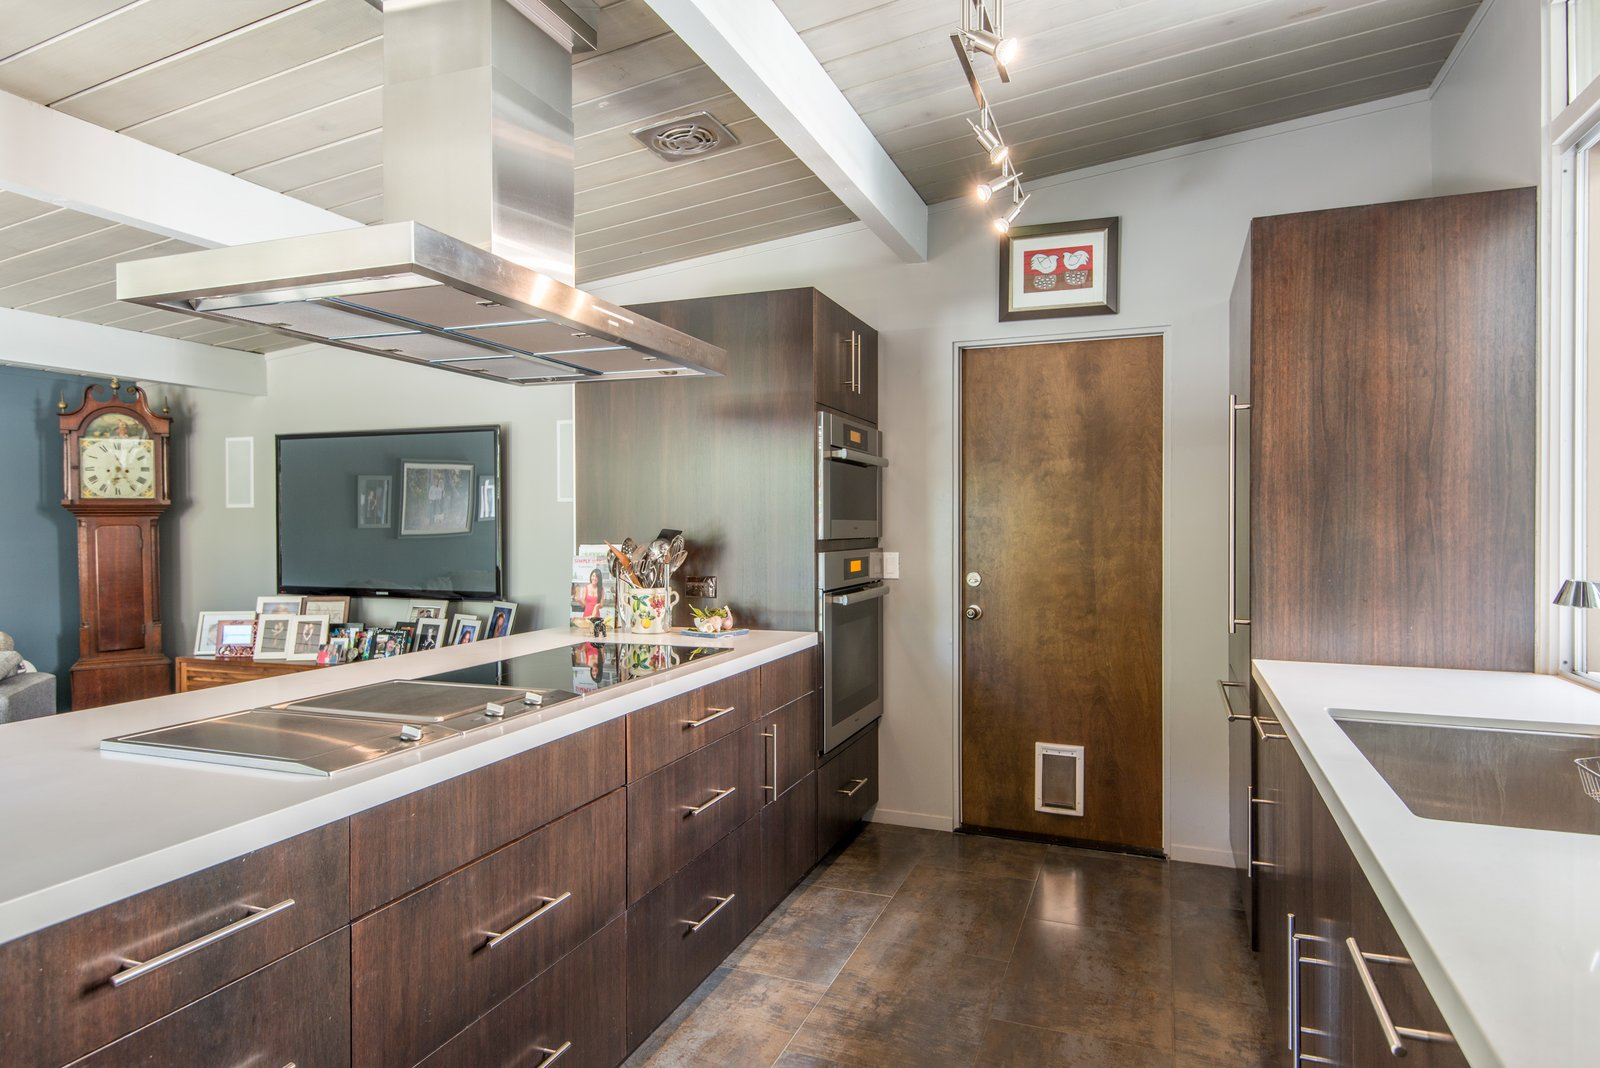 Kitchen, Range Hood, Wood Cabinet, Wall Oven, Porcelain Tile Floor, Dishwasher, Refrigerator, Track Lighting, Engineered Quartz Counter, Cooktops, and Undermount Sink Crystal Cabinetry and Miele appliances  Sunnyvale Eichler Remodel